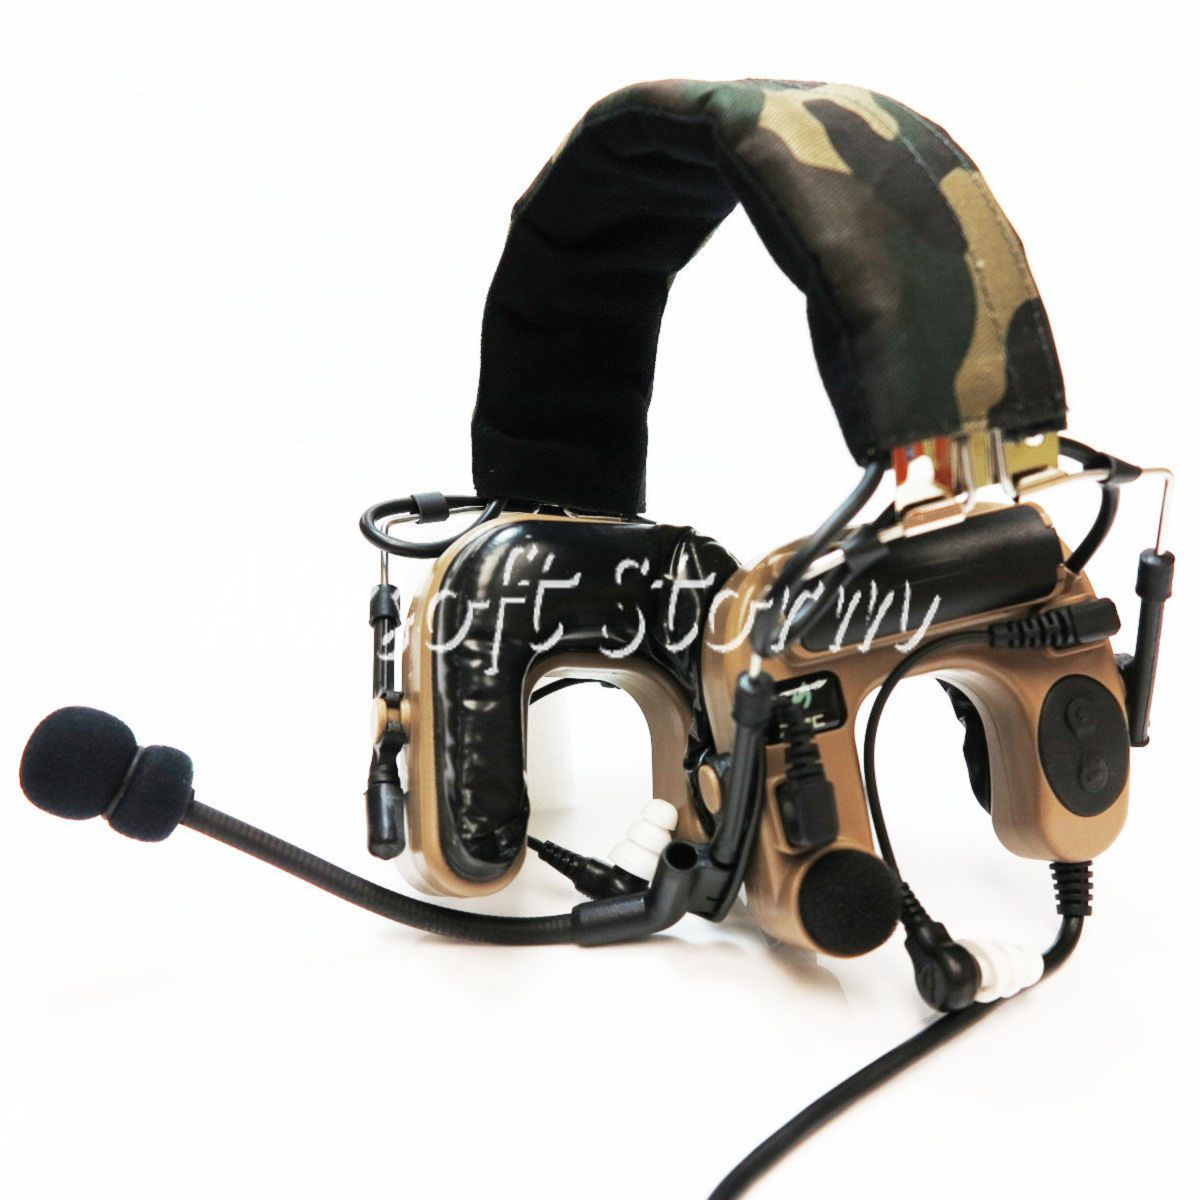 Airsoft Gear SWAT Z Tactical Comtac IV Style Tactical Headset Dark Earth/Woodland Camo